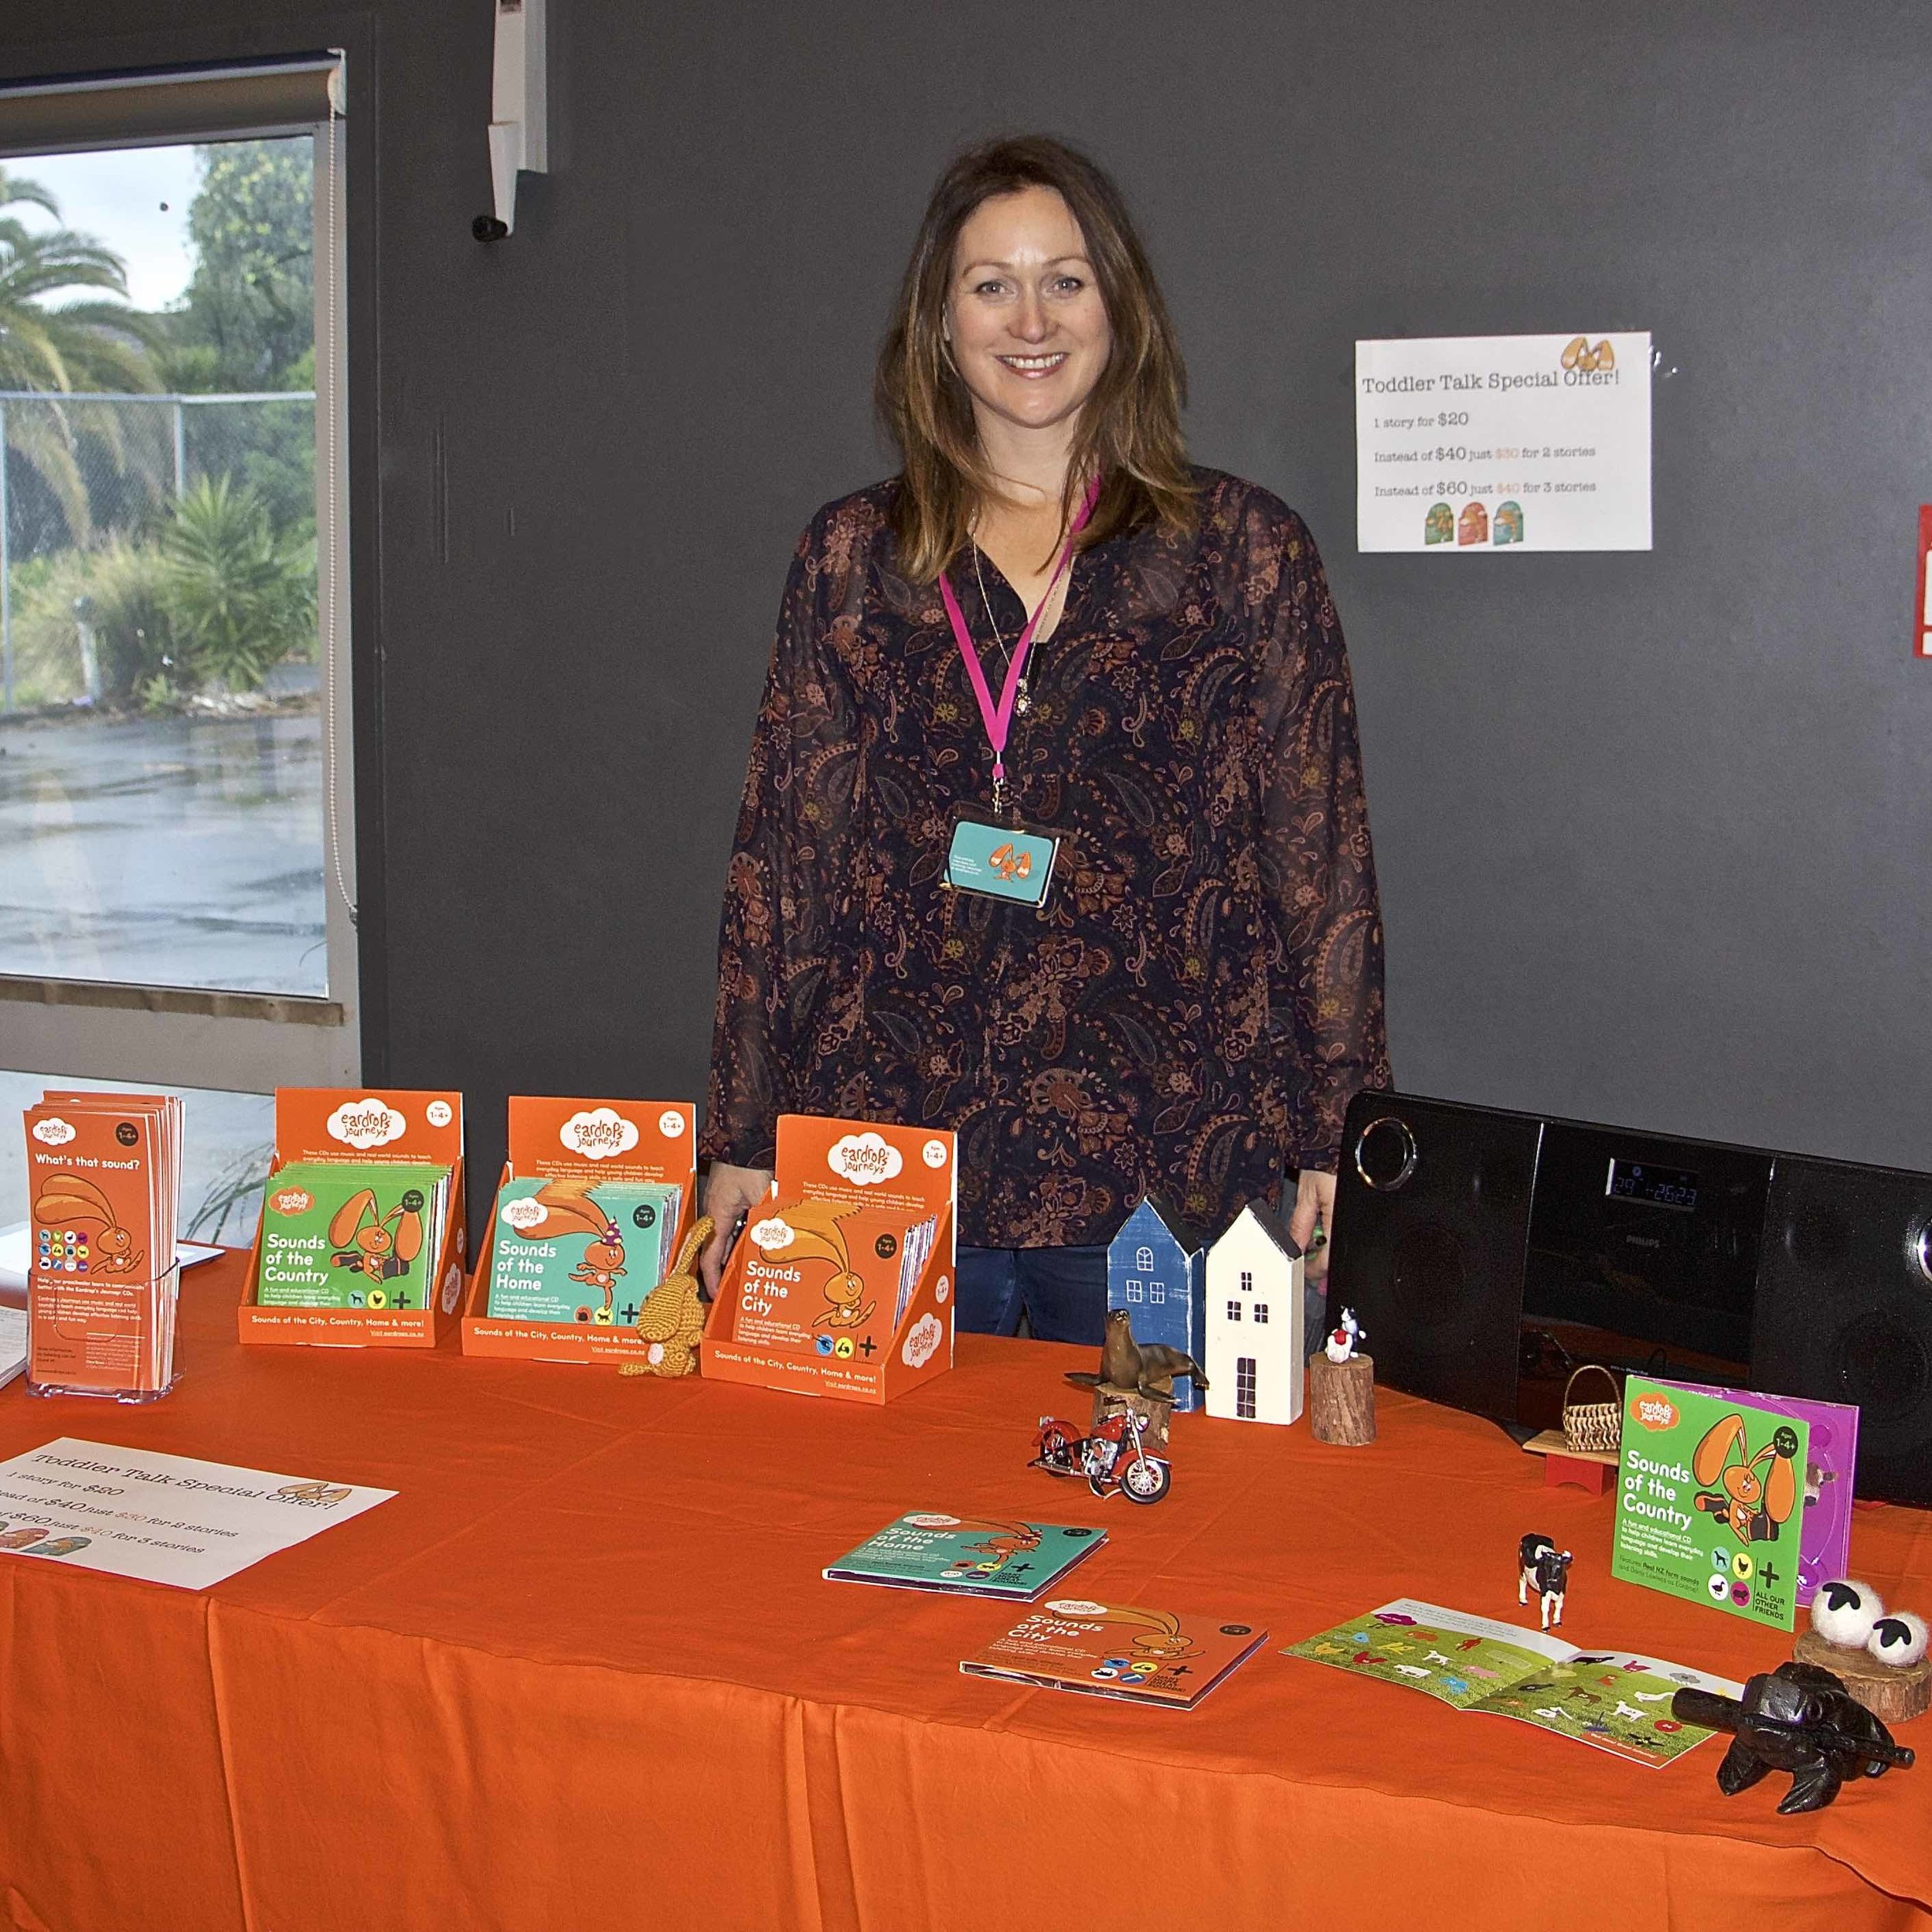 Liz Donnelly at Toddler Talk expo